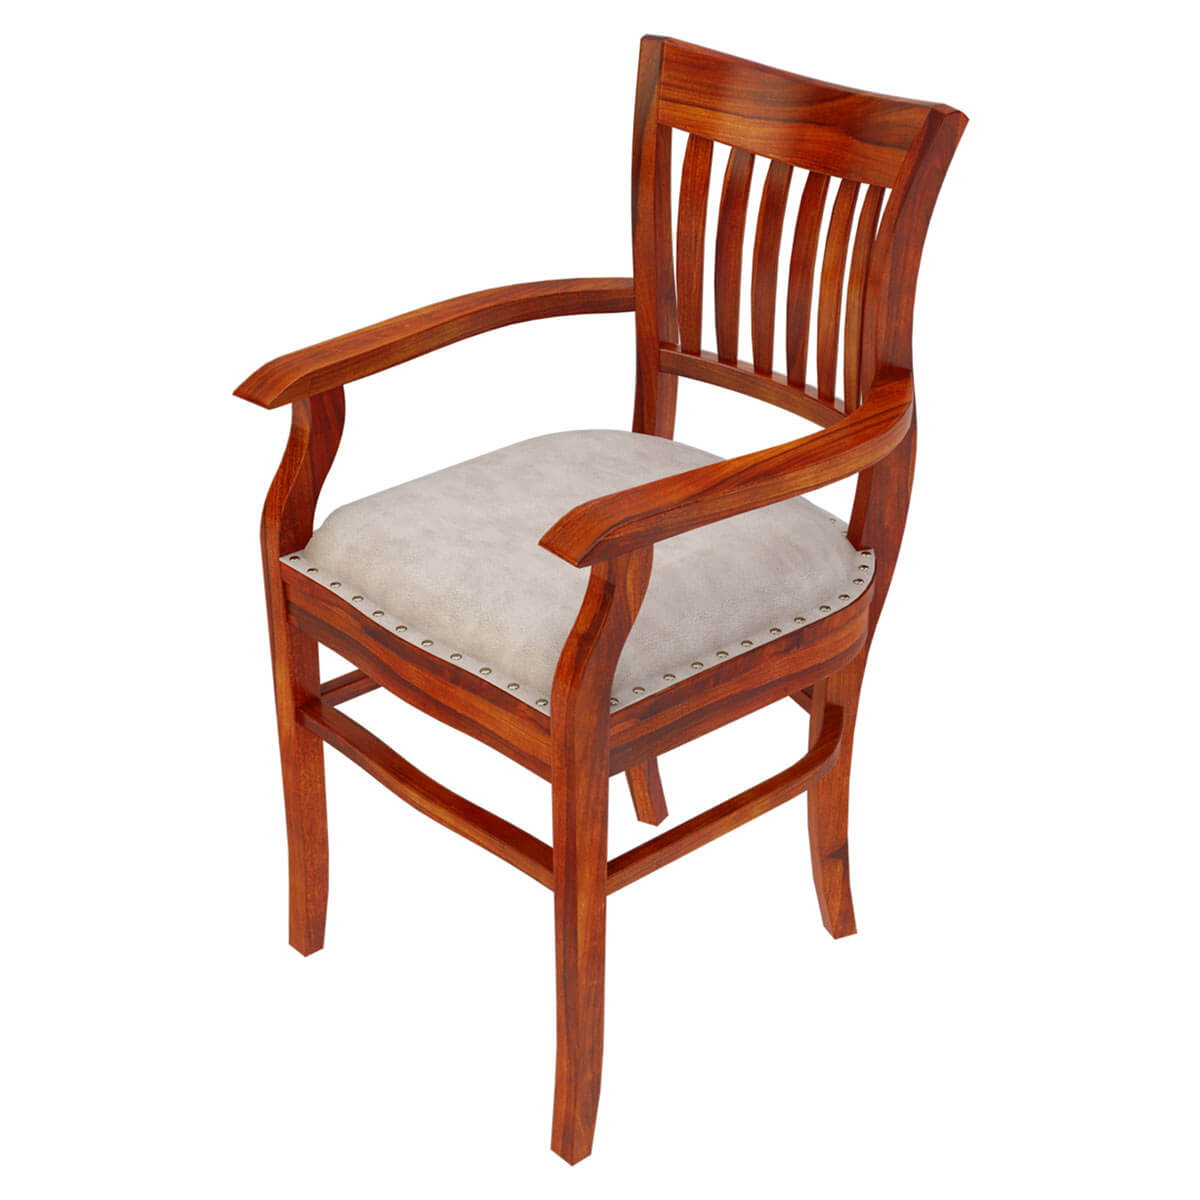 Solid Wood Arm Chair Leather Cushion Dining Furniture : 5445 from www.sierralivingconcepts.com size 1200 x 1200 jpeg 92kB